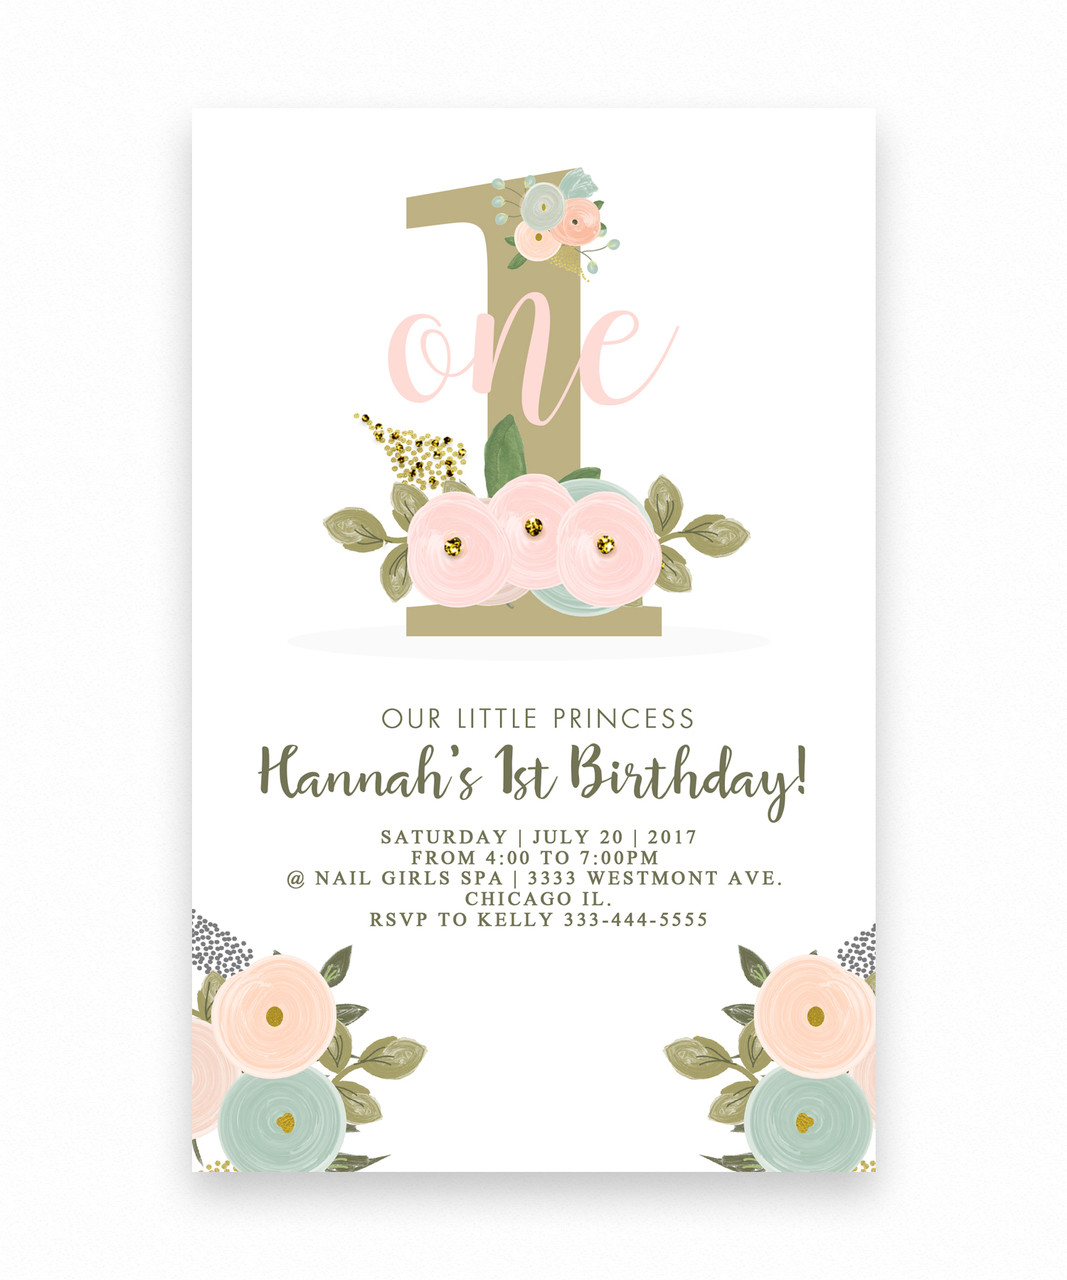 Birthday invitation, Floral Big one 1st birthday invitation